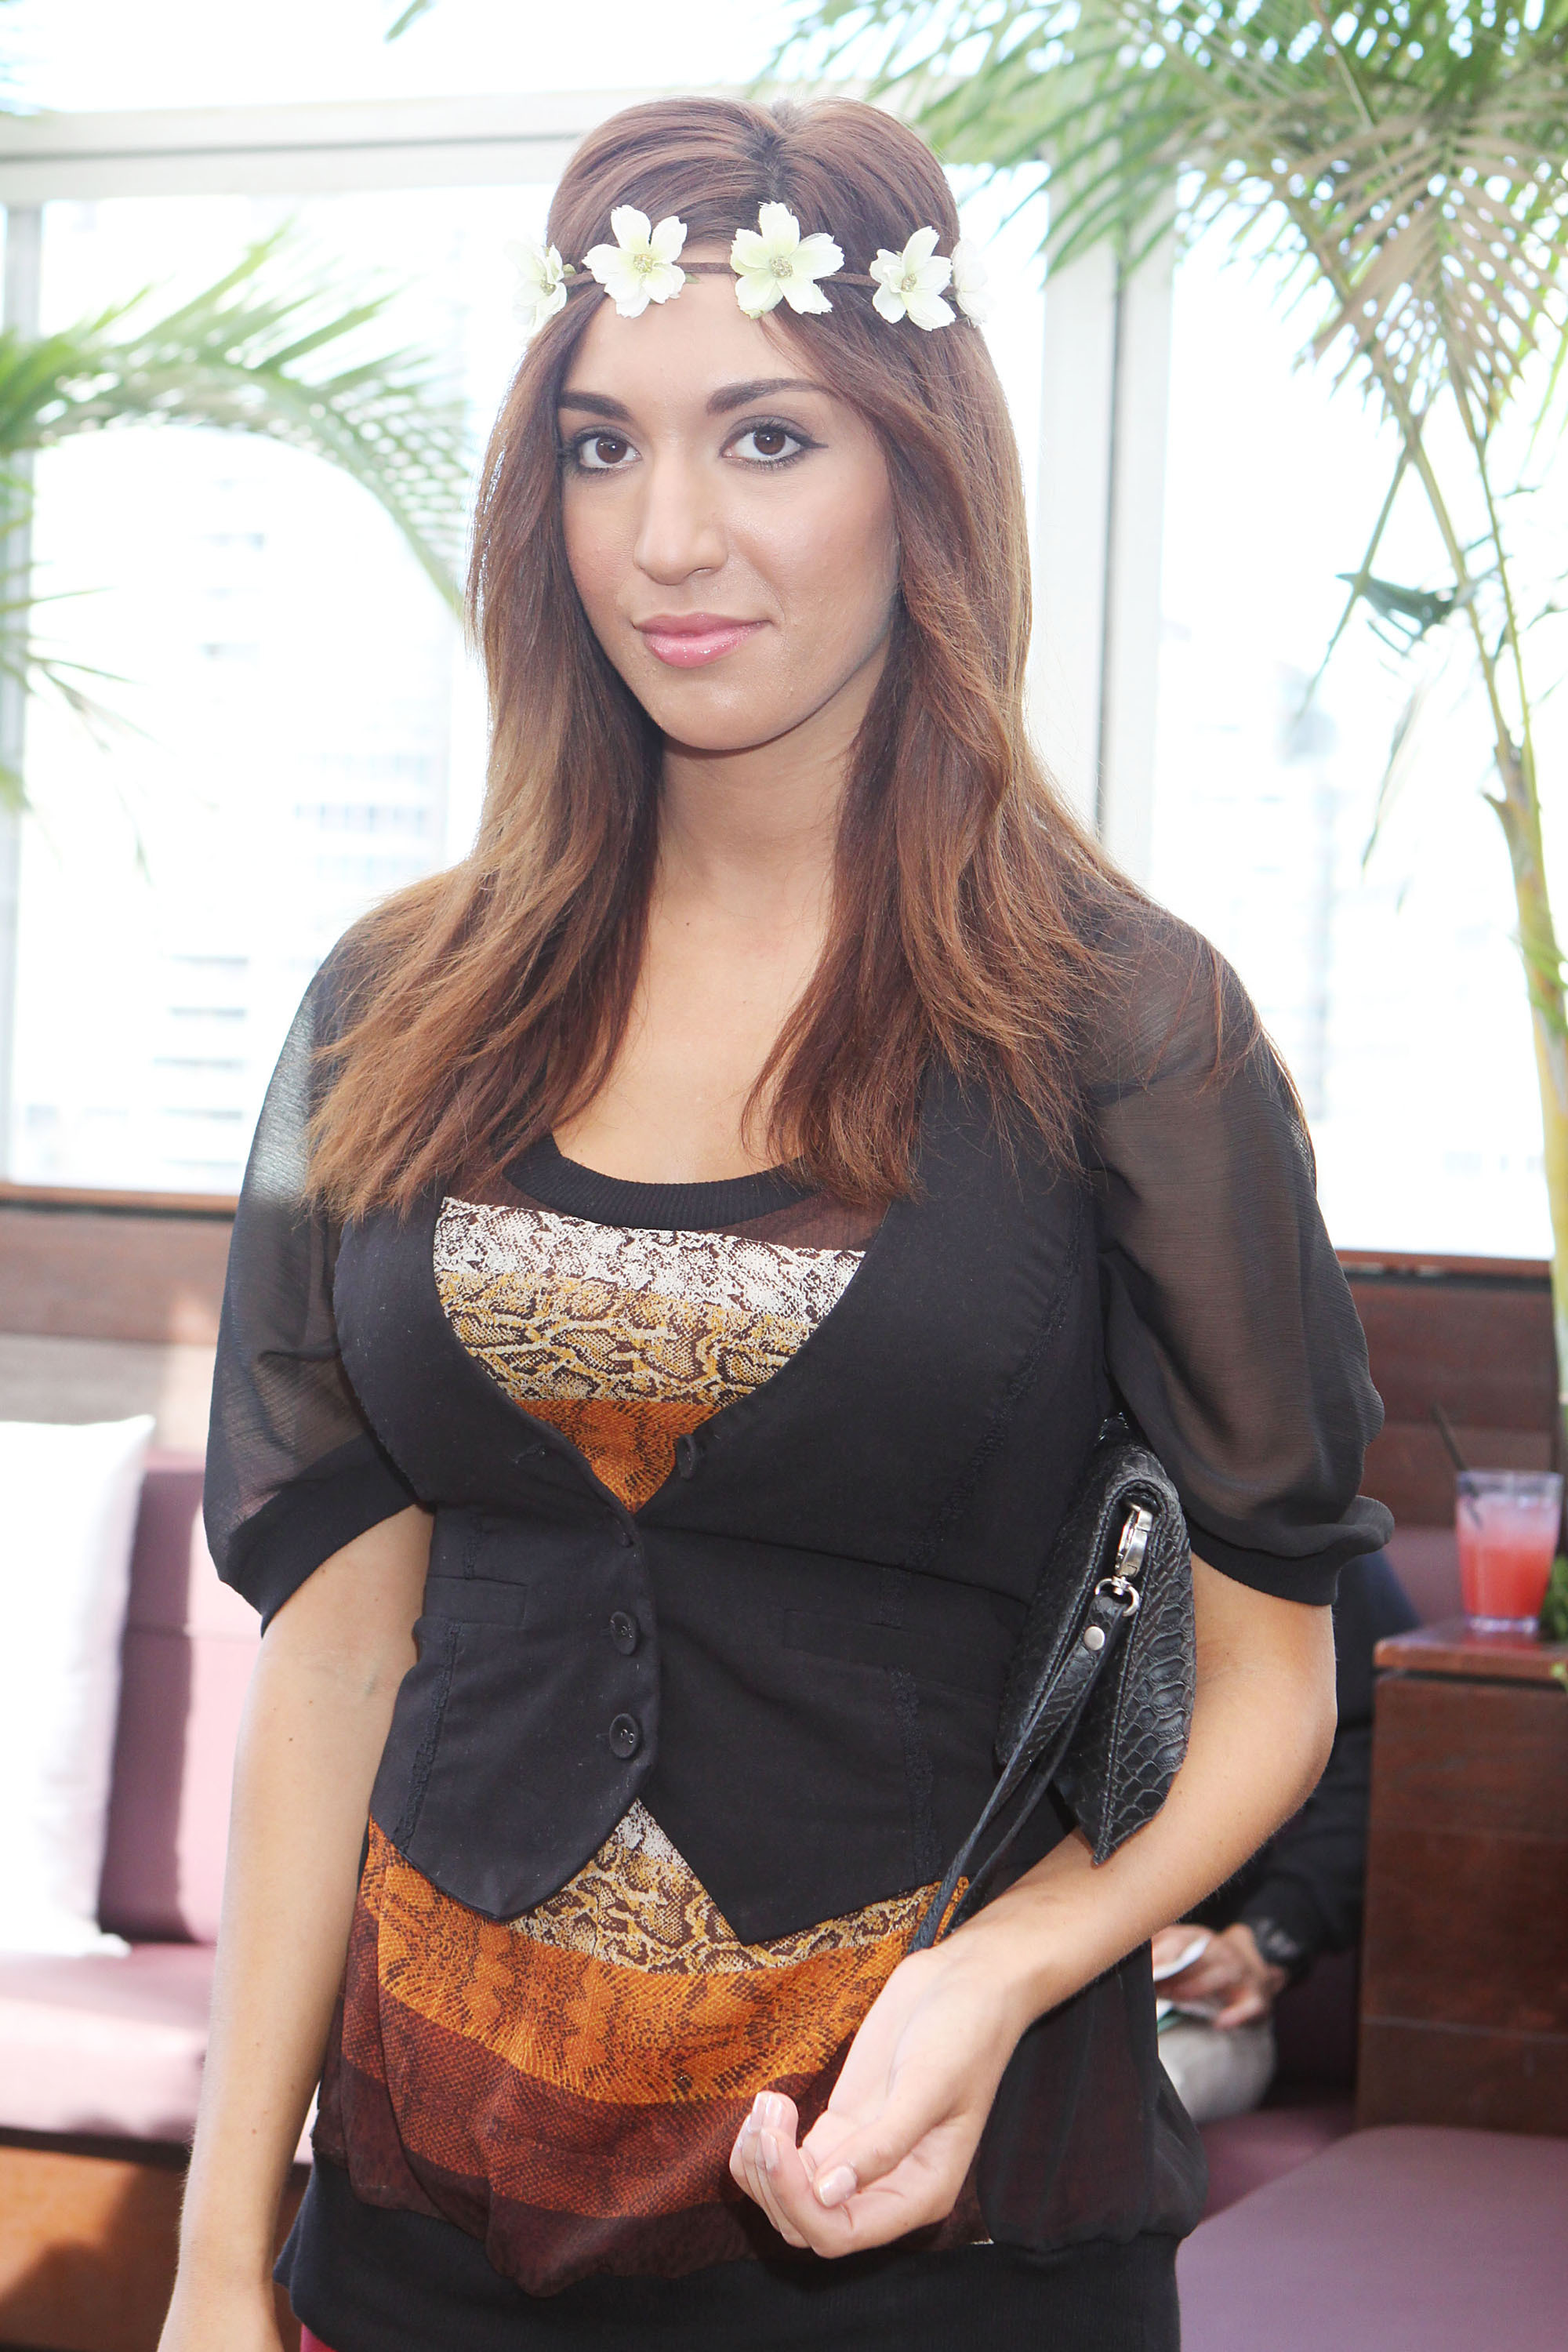 She have farrah abraham xvideos one those ladies